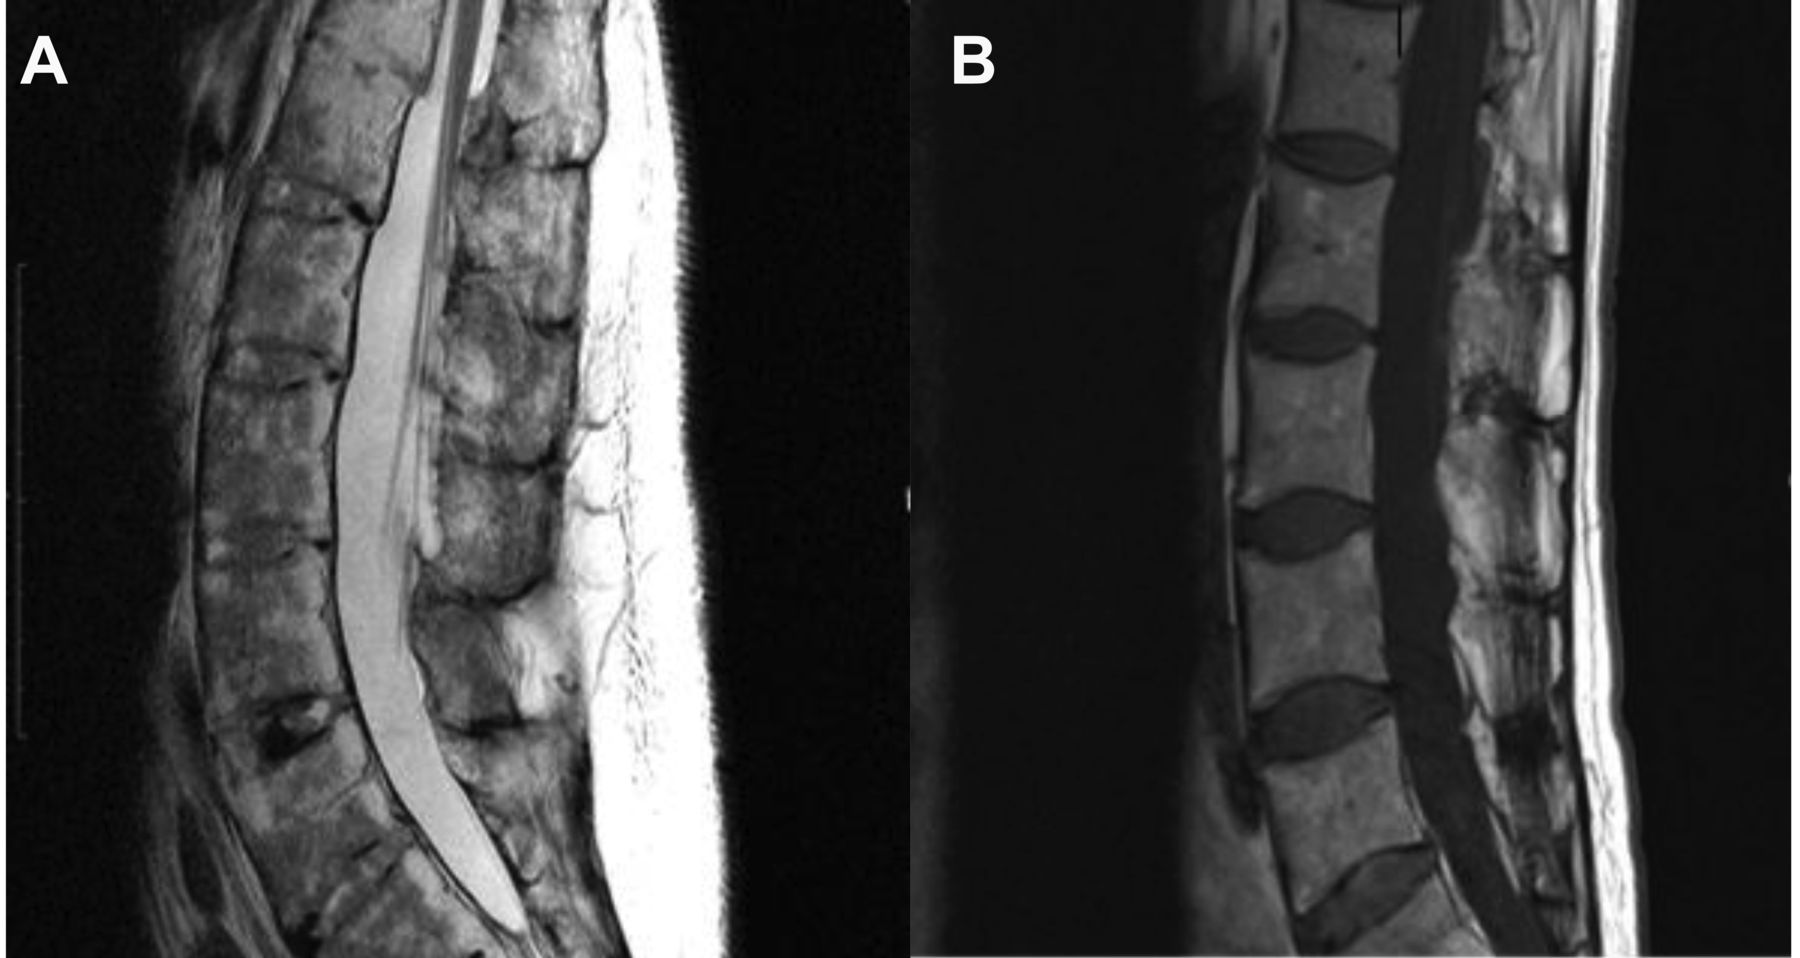 Cauda Equina Syndrome In Ankylosing Spondylitis Challenges In Diagnosis Management And Pathogenesis The Journal Of Rheumatology The pia mater tapers and continues down as the filum terminale at the end of the conus medullaris.1. cauda equina syndrome in ankylosing